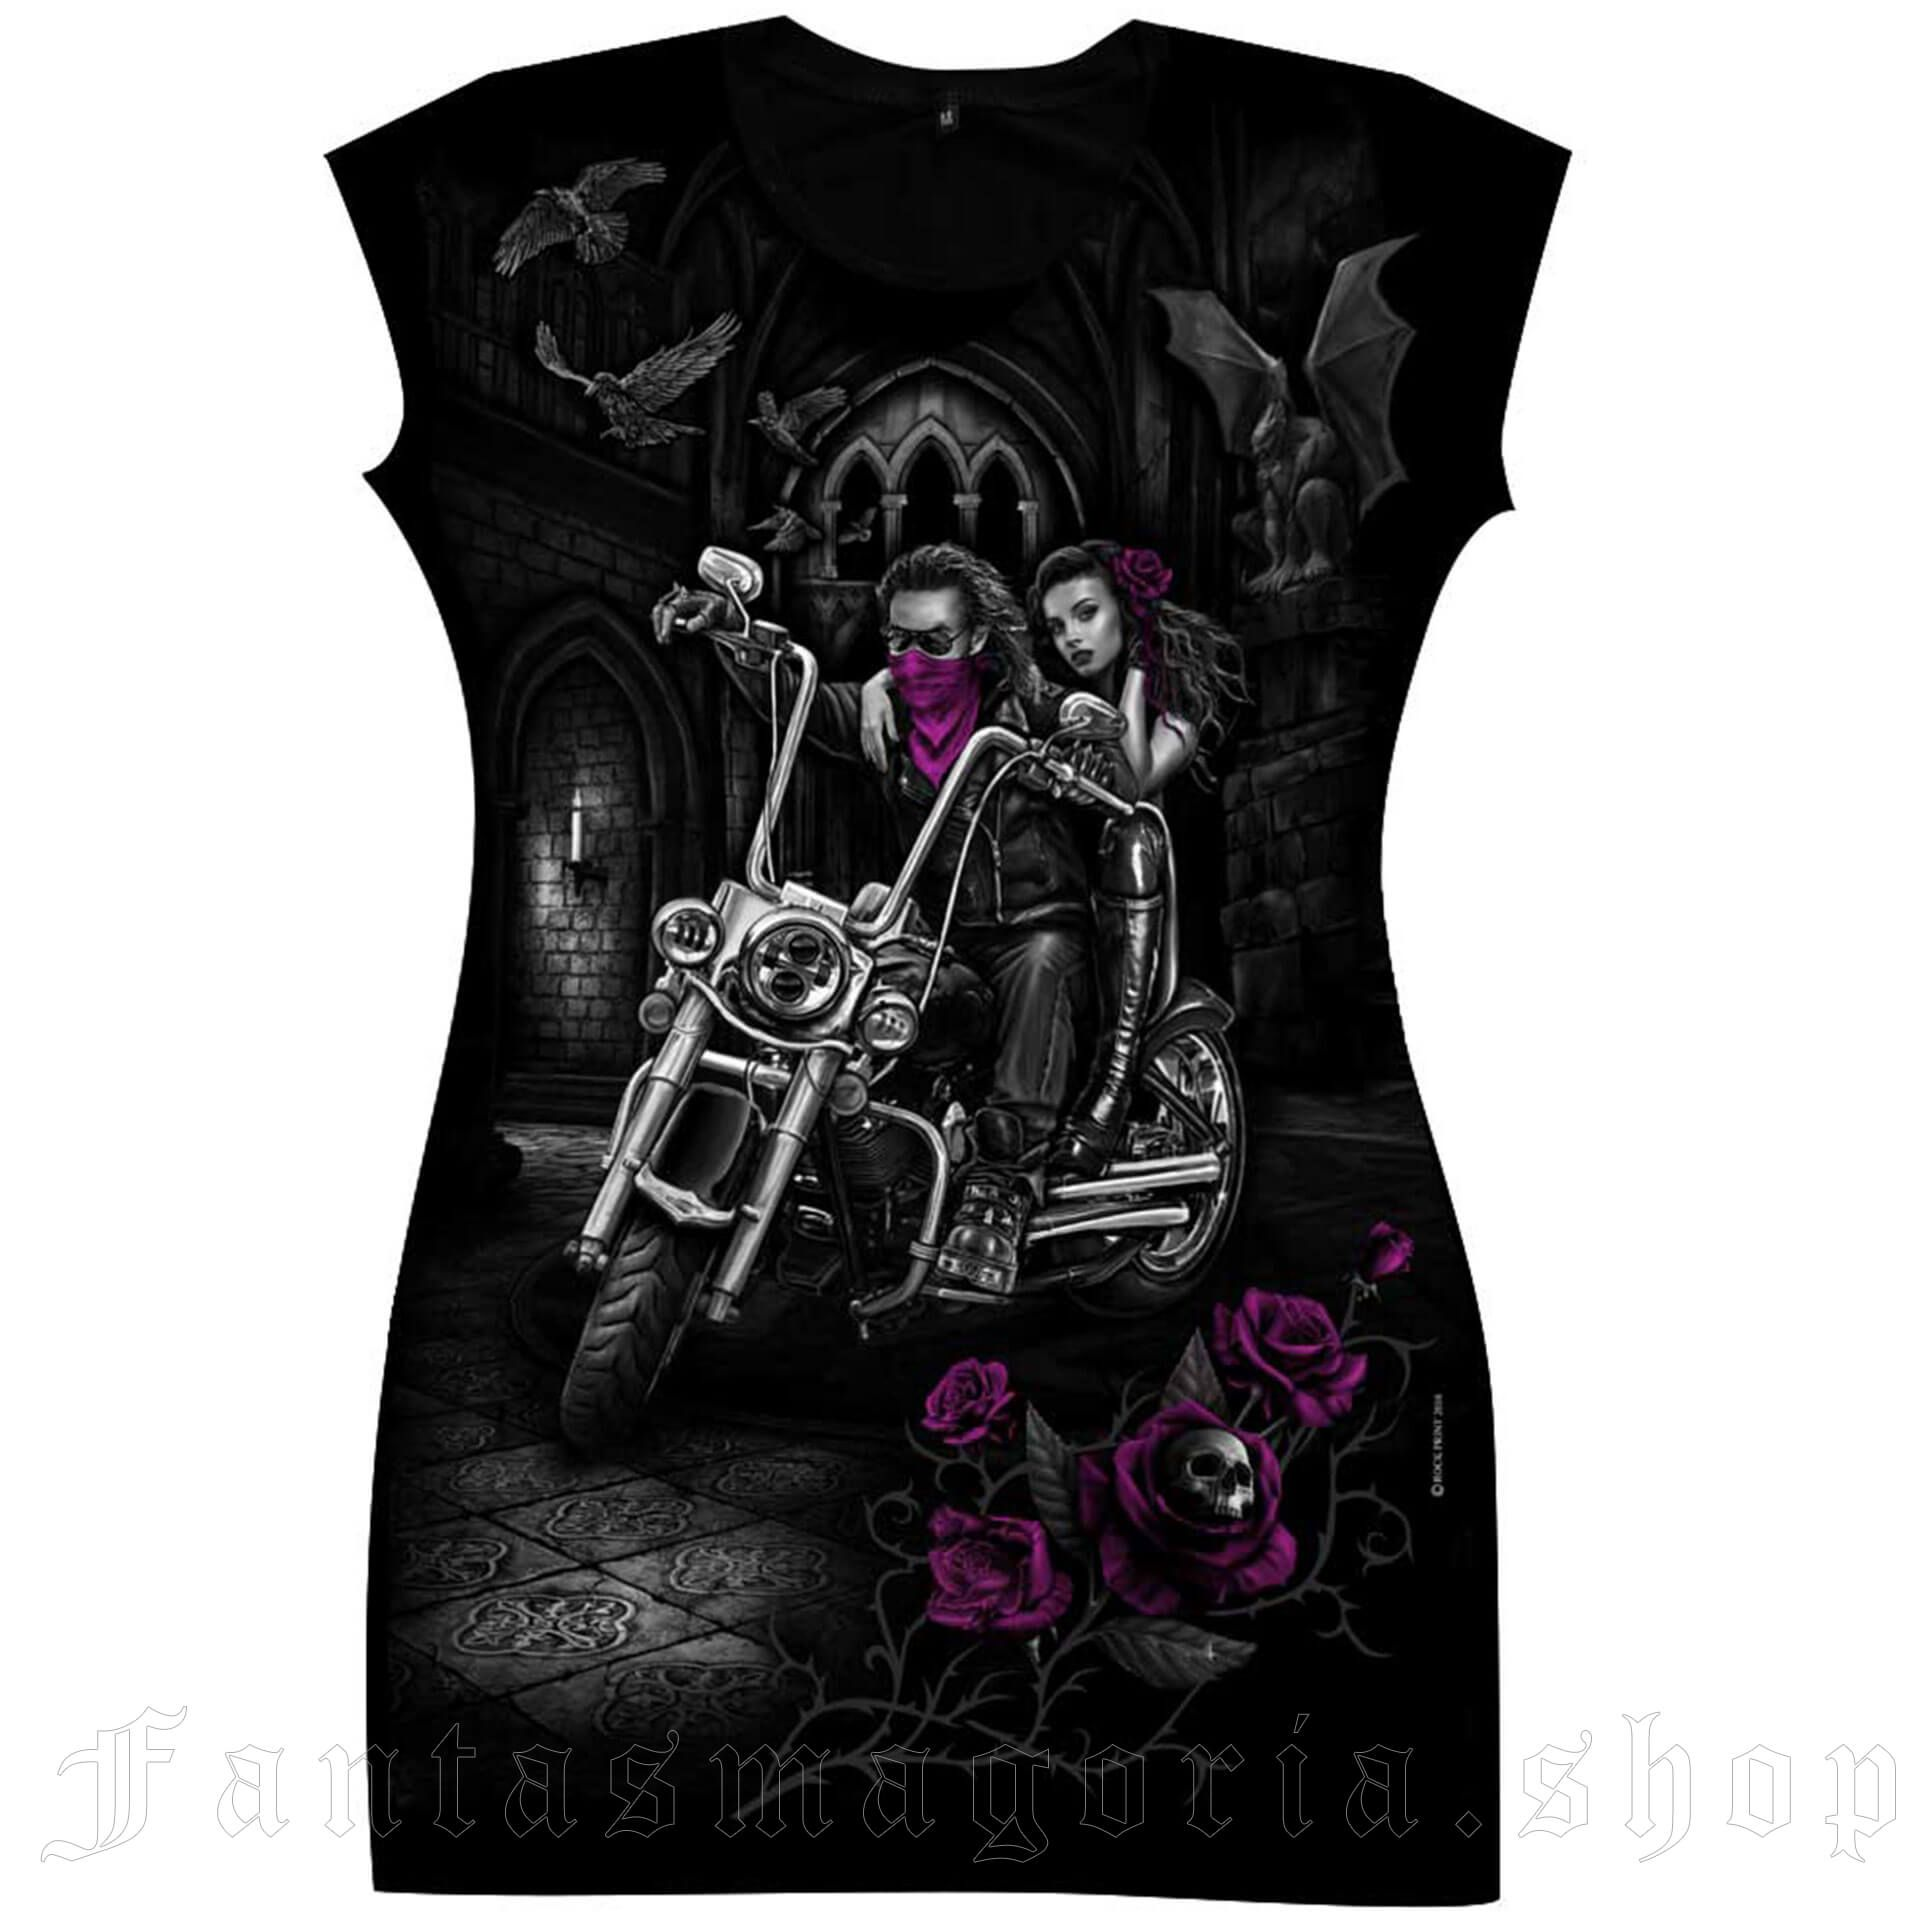 women's Bikers Love Tunic by FANTASMAGORIA brand, code: TD60